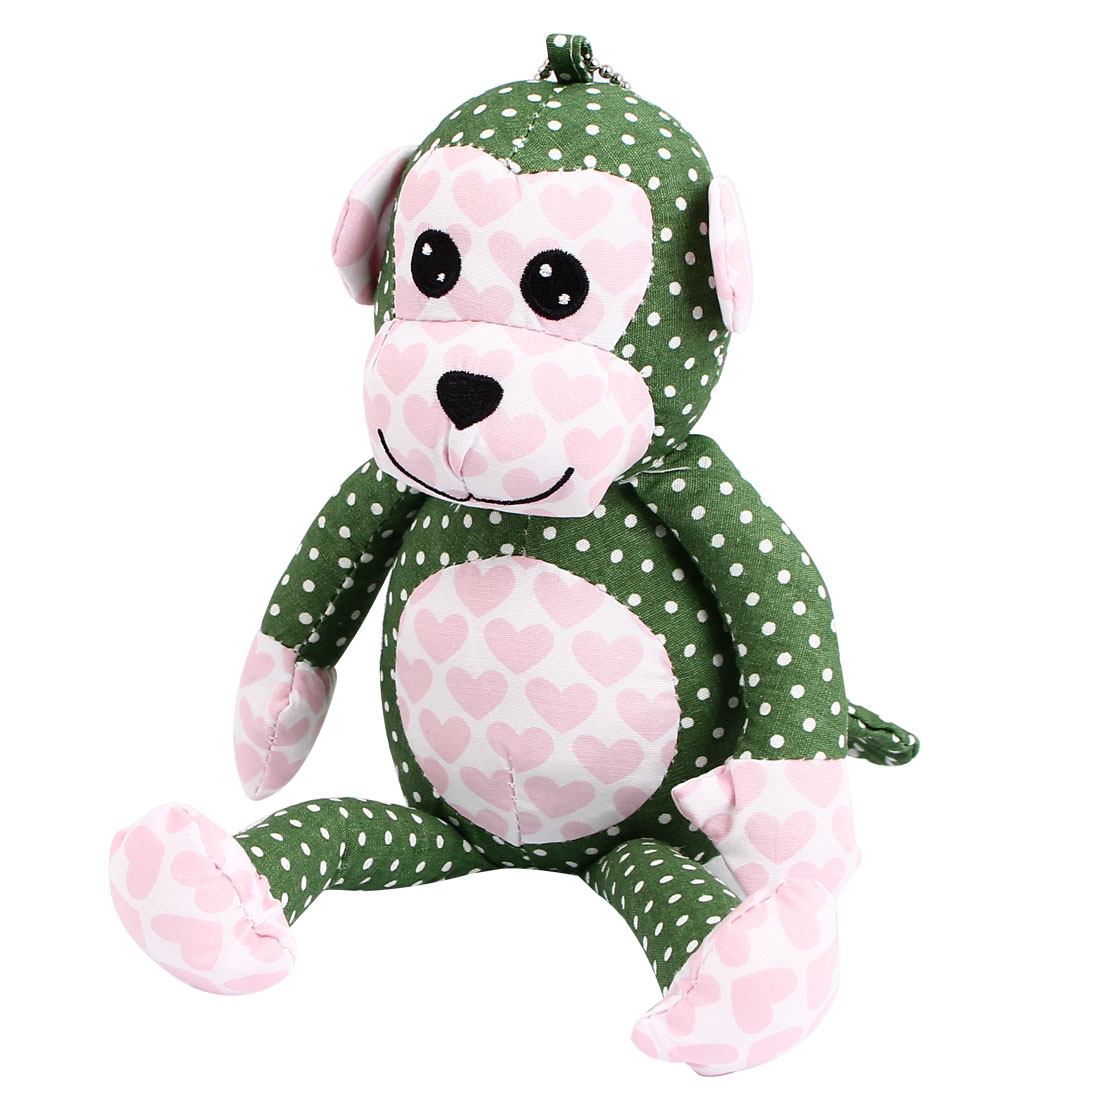 Metal Ball Chain Dotted Pattern Bag Decoration Monkey Doll Toy Dark Green